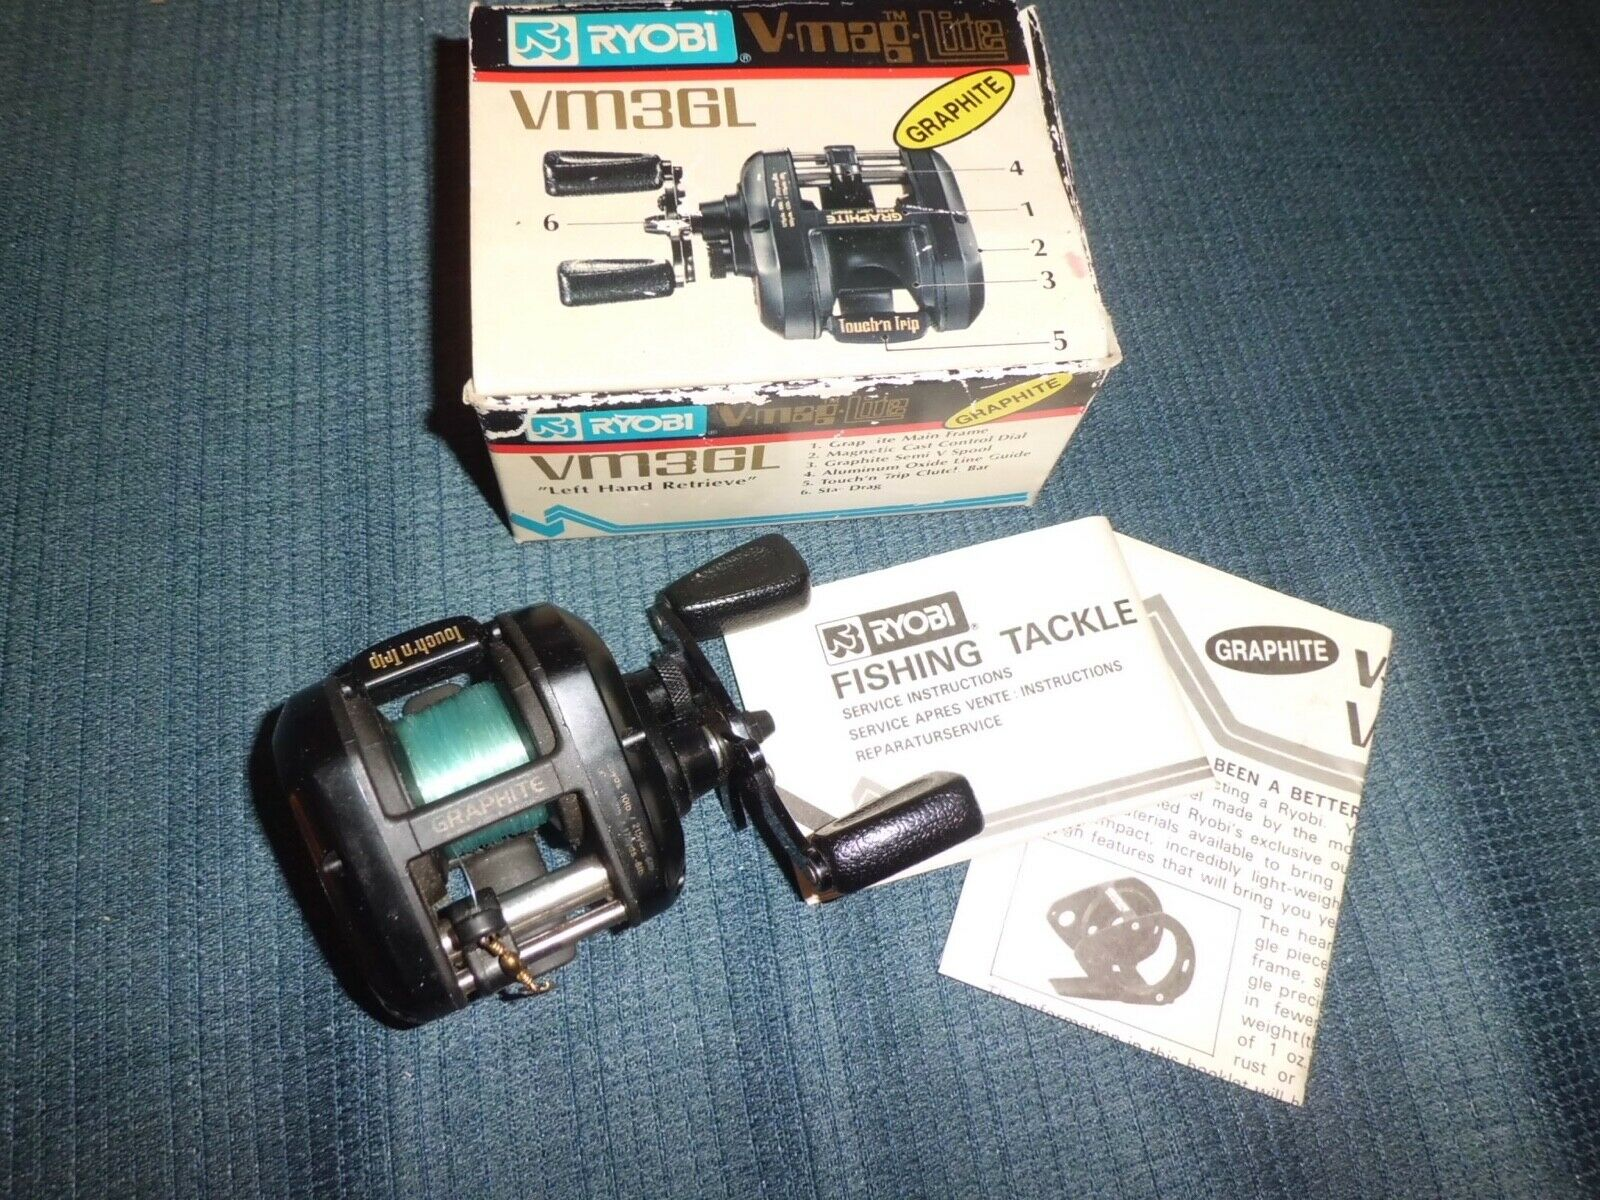 Vintage Ryobi V-Mag Lite VM3GL (lefty) Graphite Baitcasting Reel made in Japan